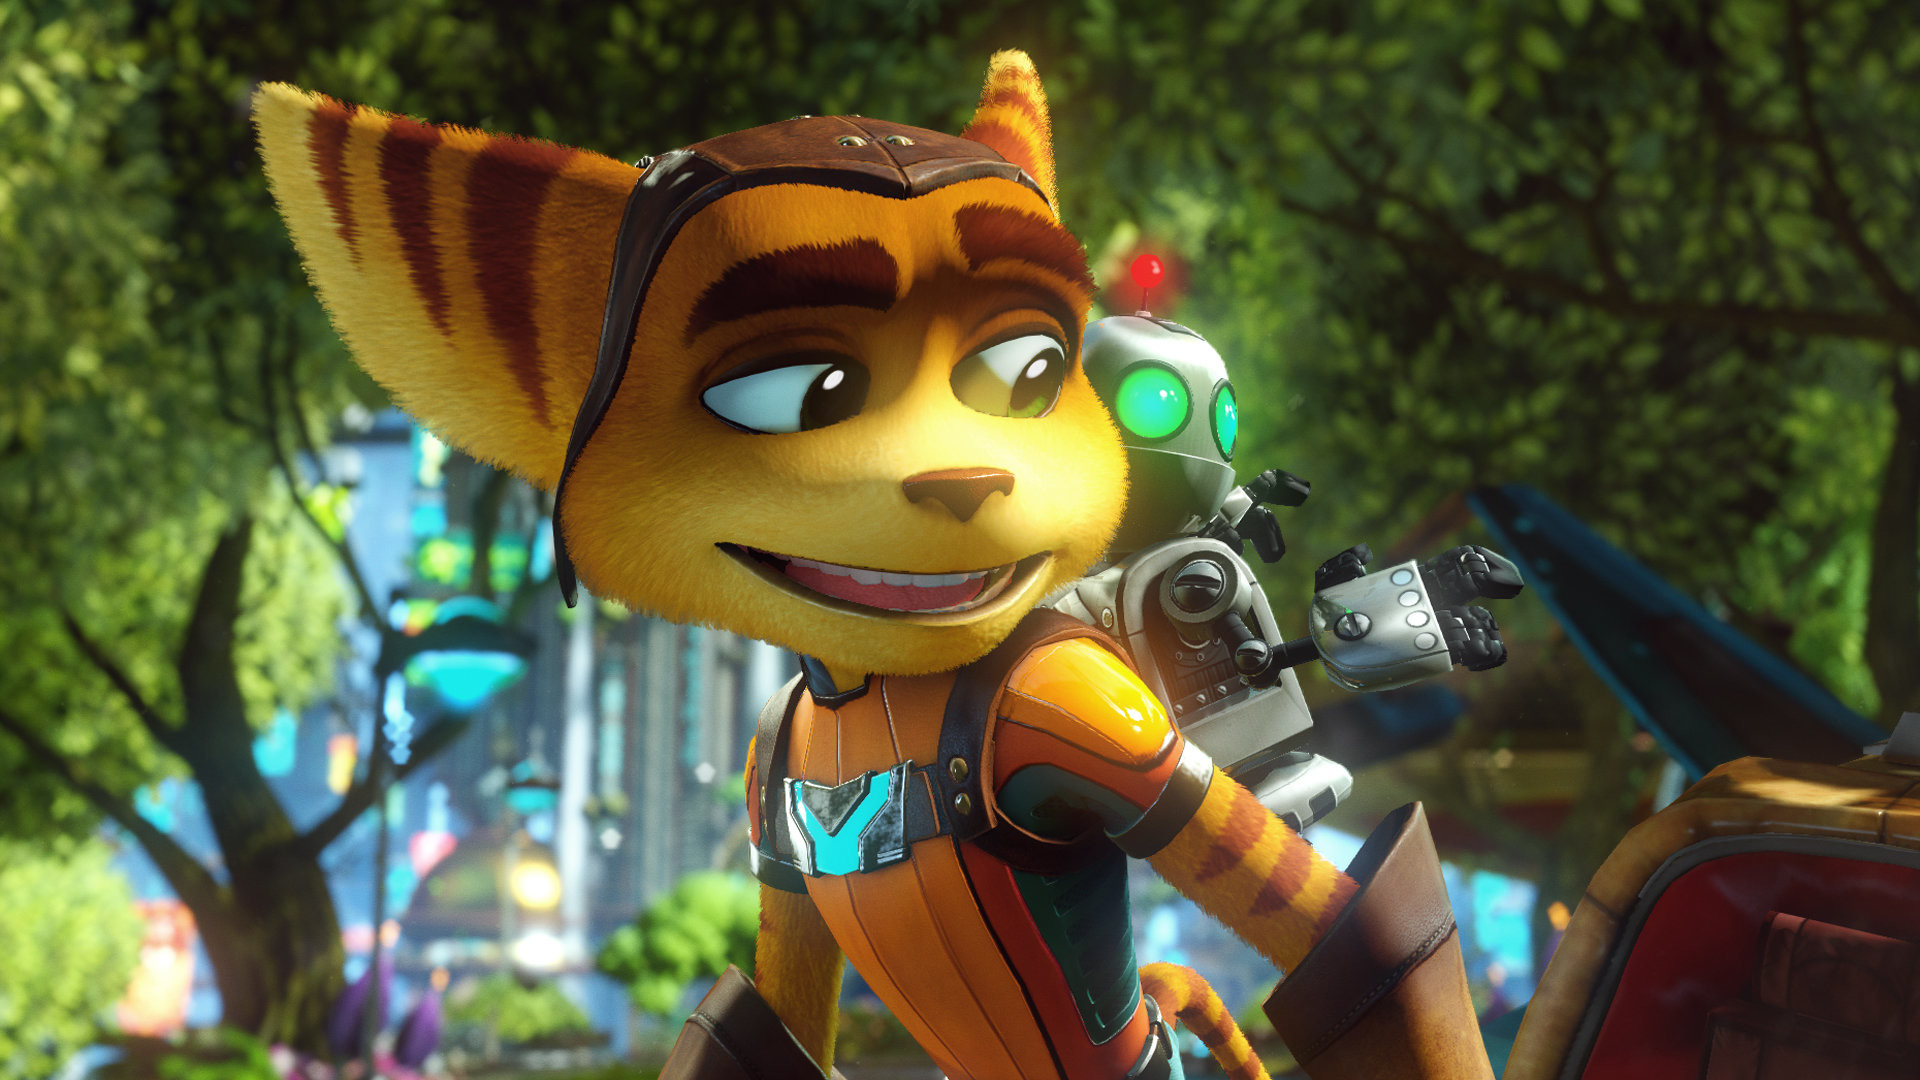 1920x1080 Ratchet & Clank, Star Fox Zero, and Quantum Break are 3 Reasons to be  Excited for April Gaming